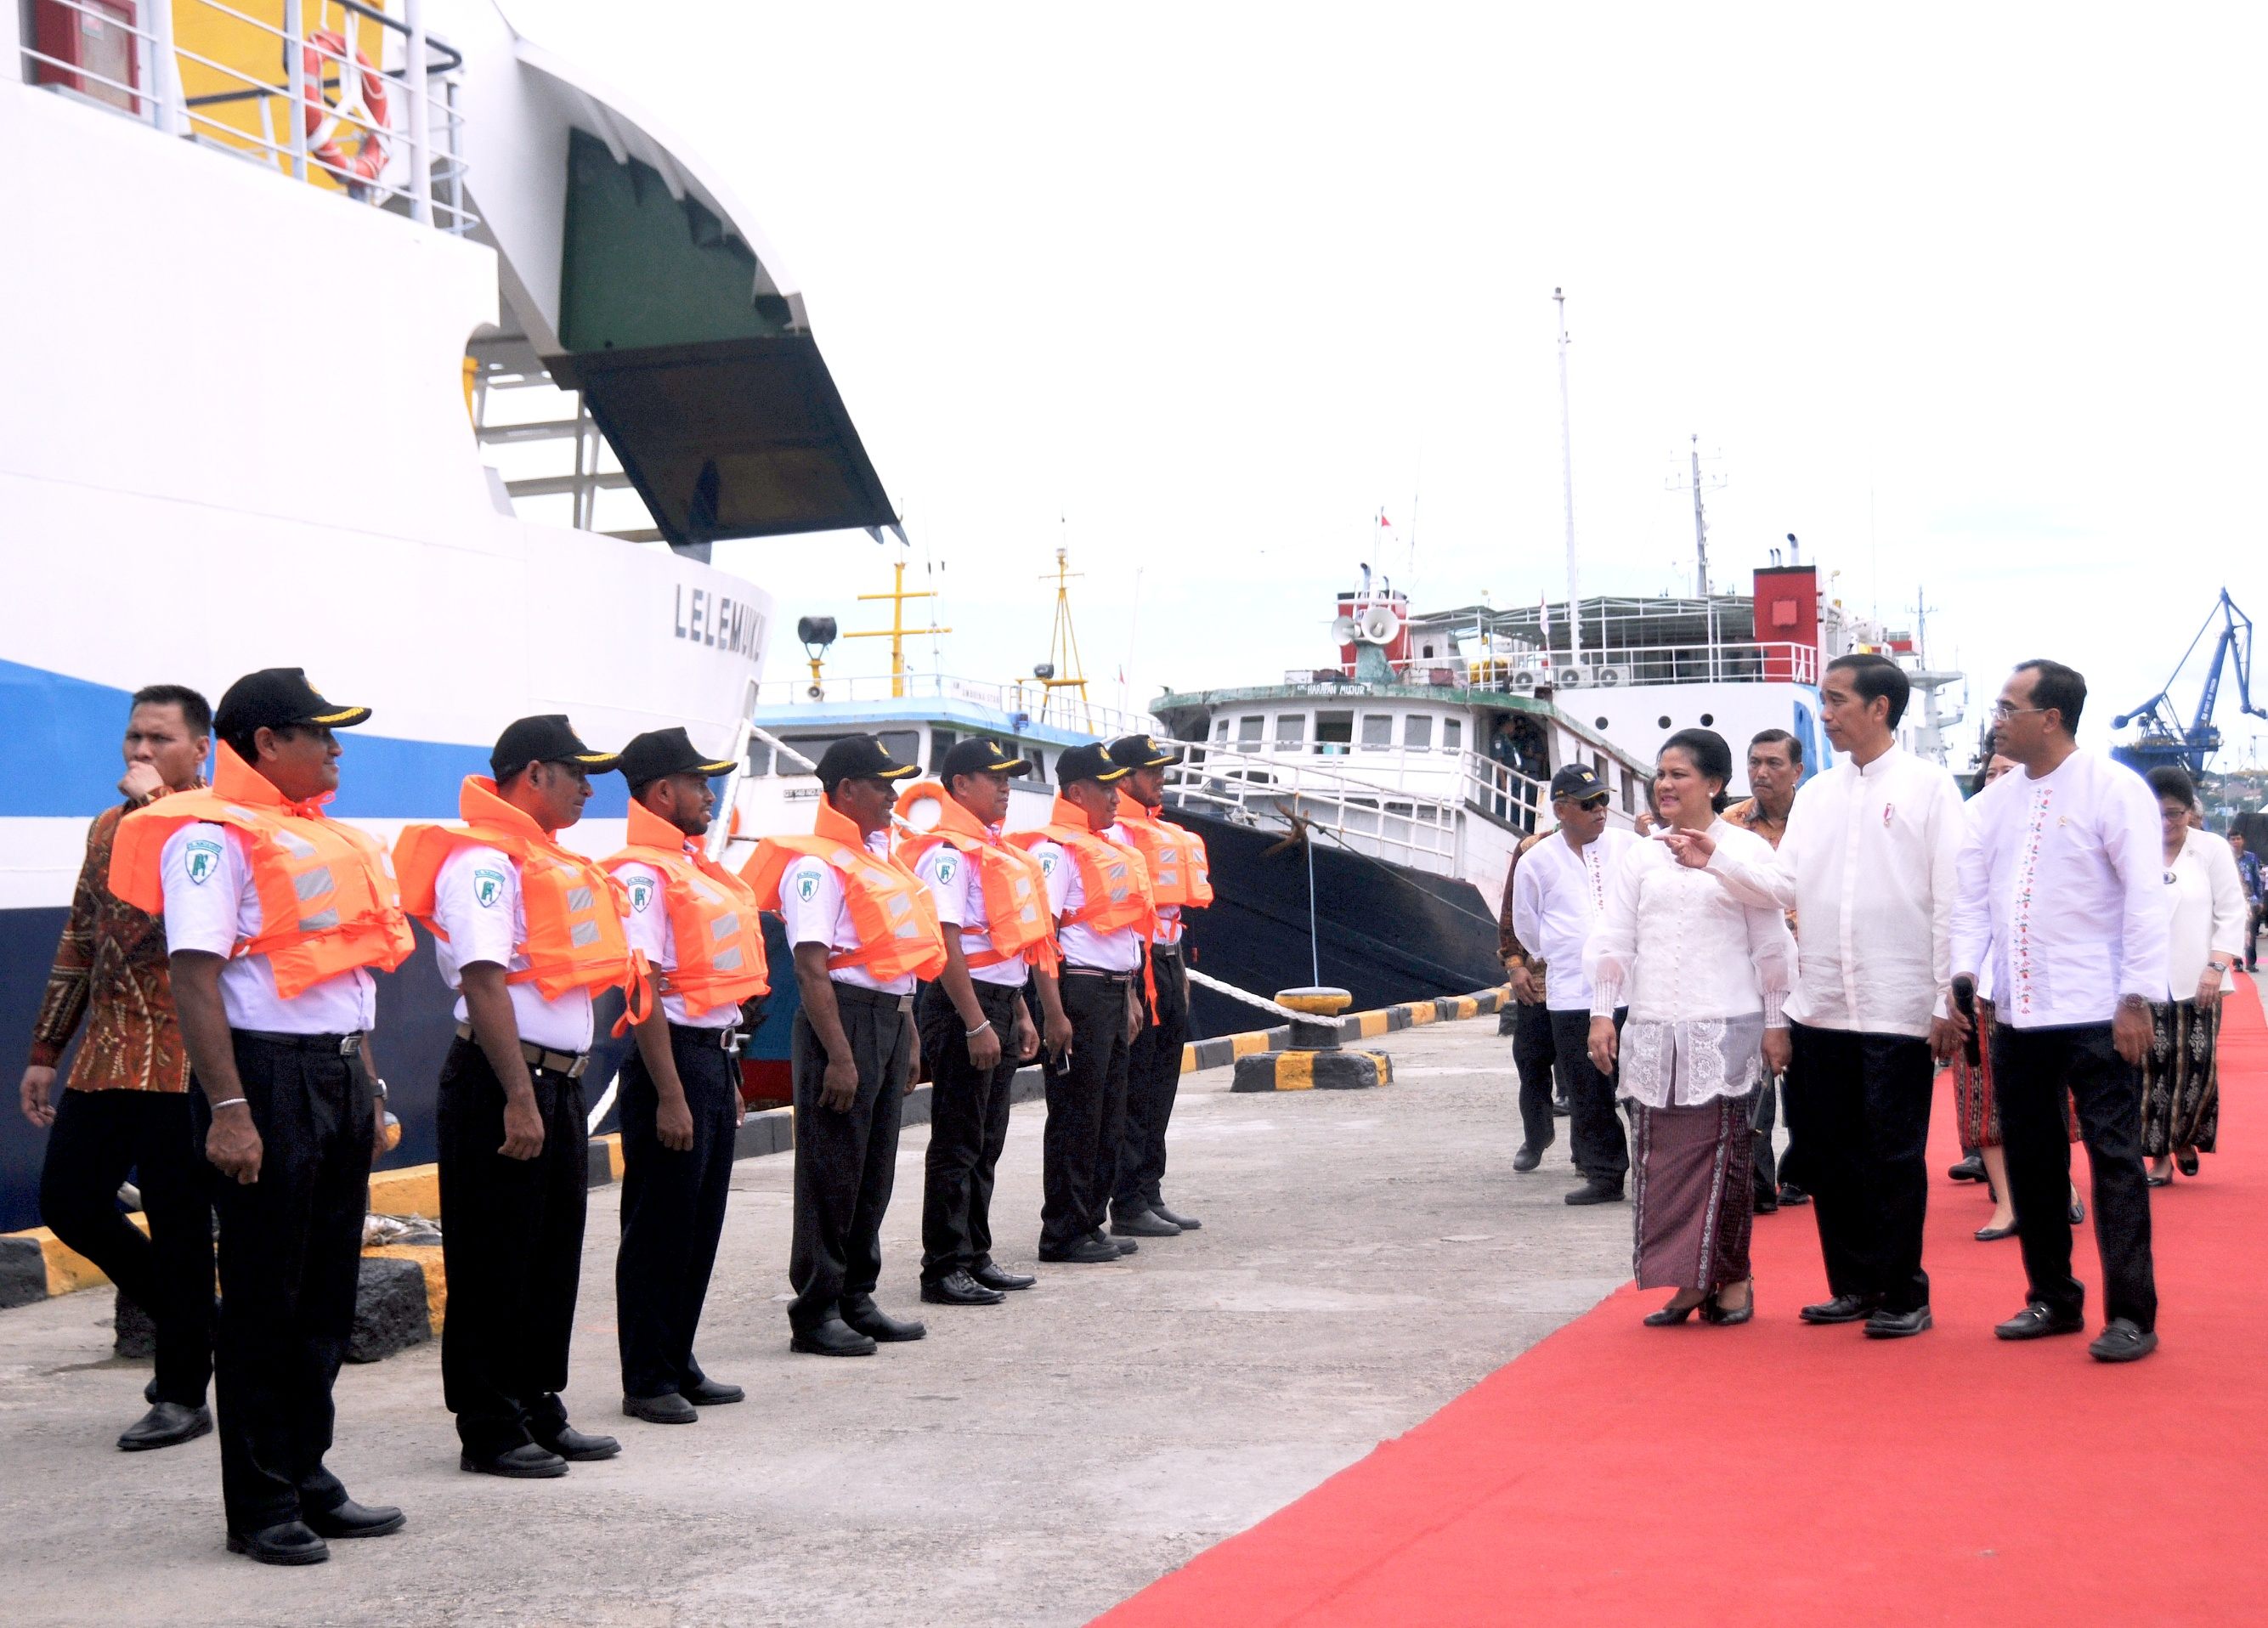 President Jokowi and First Lady Ibu Iriana inspect two new Ro-Ro vessels at Yos Sudarso Seaport in Ambon, Maluku, Thursday (9/2). (Photo: Public Relations Division/Agung)